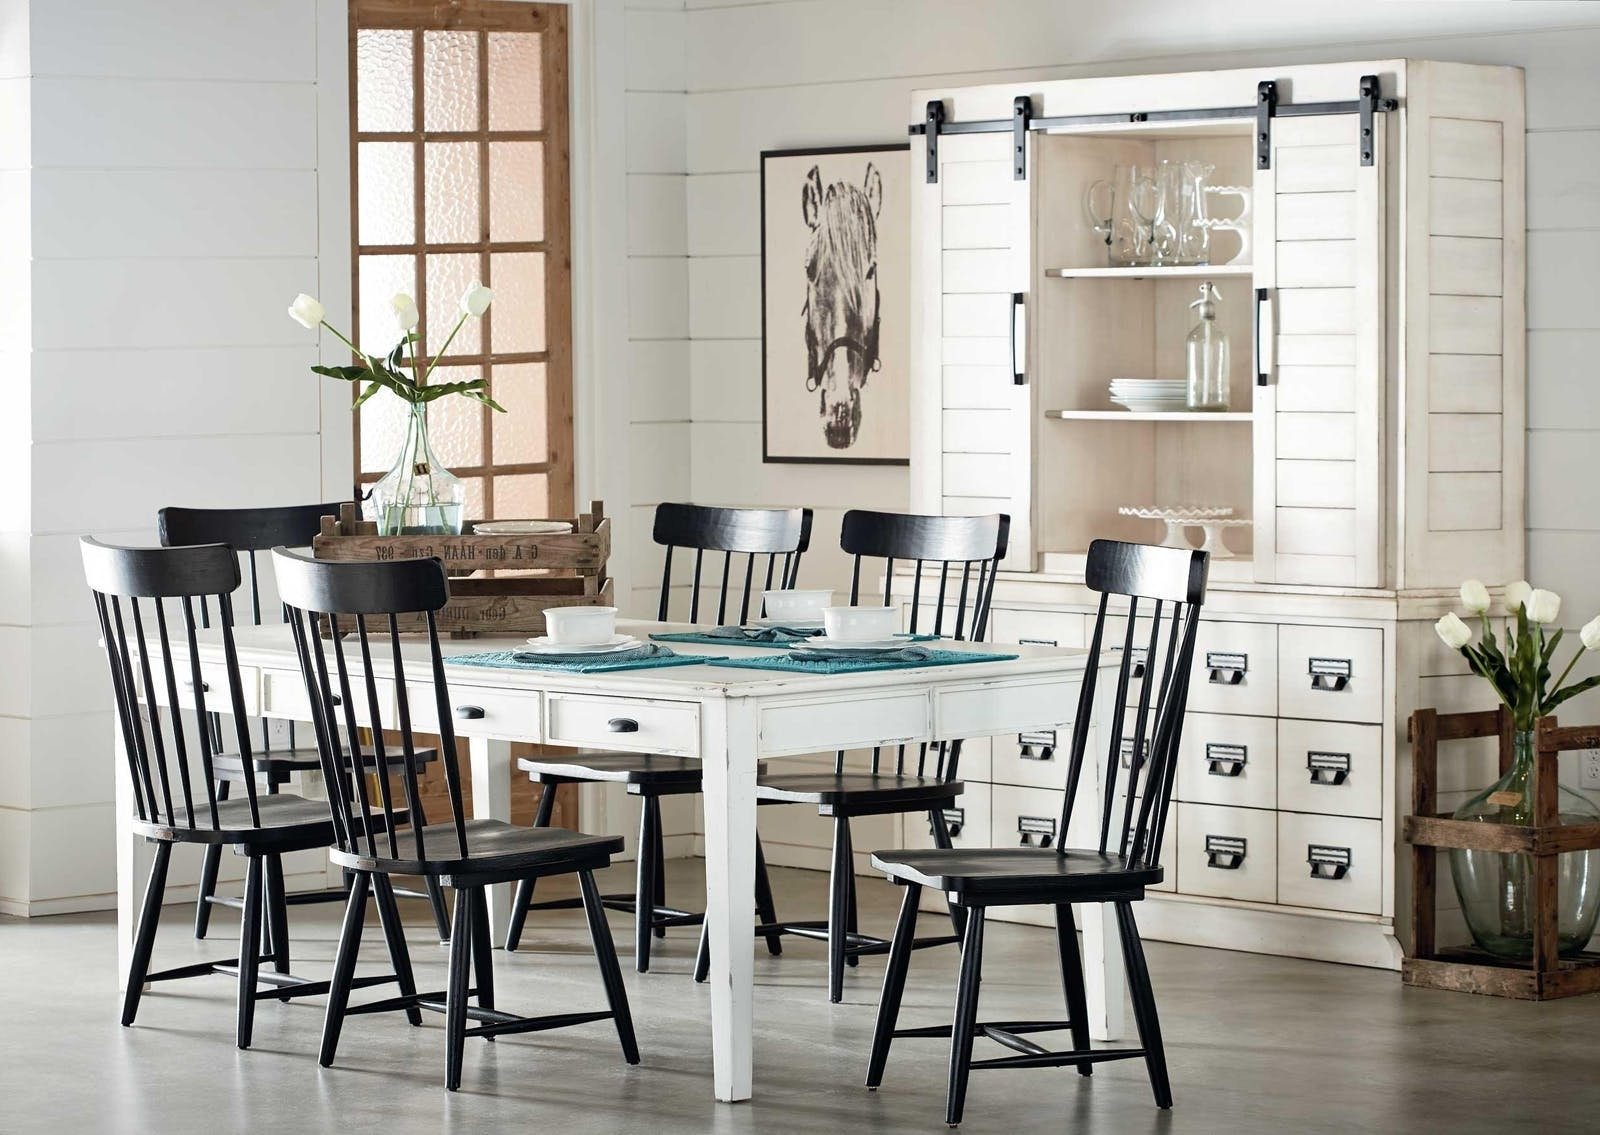 Favorite Magnolia Home Sawbuck Dining Tables Regarding Great Magnolia Home Dining Table — Indoor Outdoor Ideas : Ideas To (View 24 of 25)